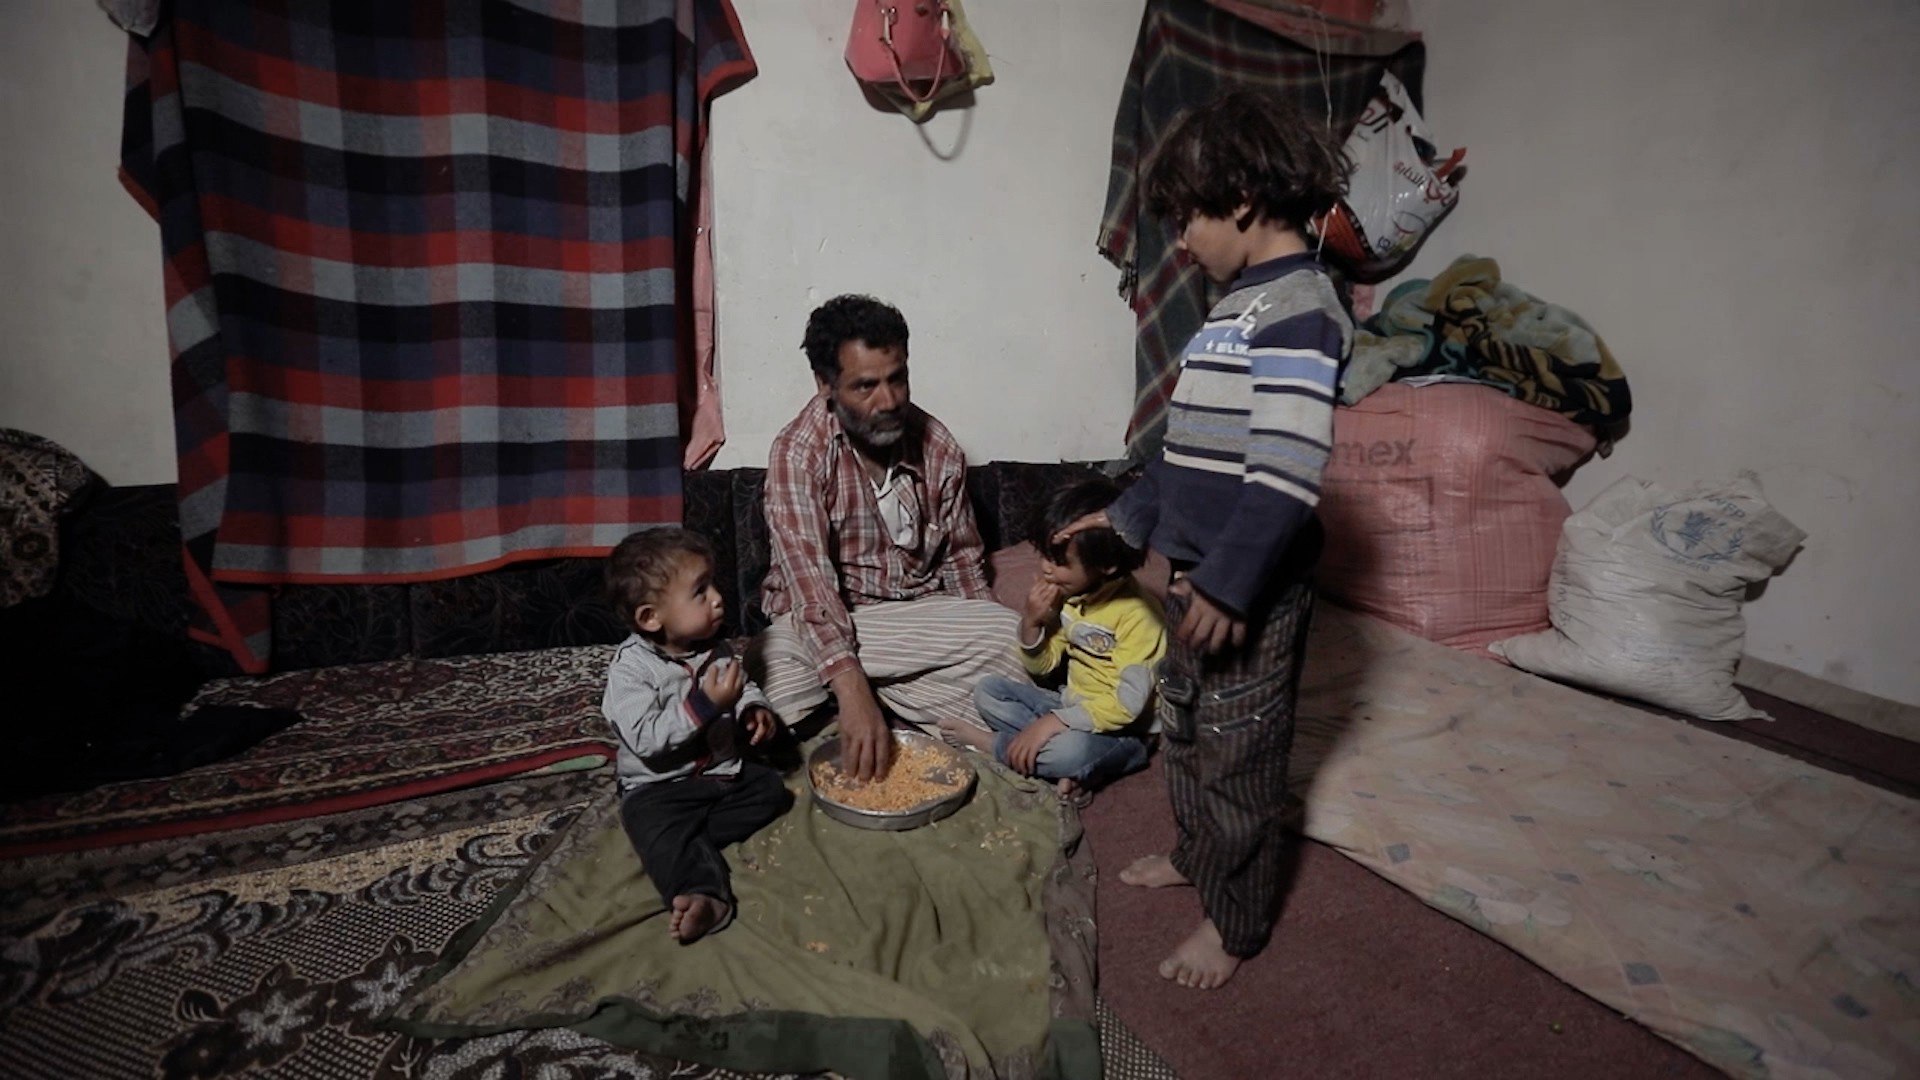 This Yemeni family still lives in the ruins of their home 3 years after it was destroyed by an airstrike